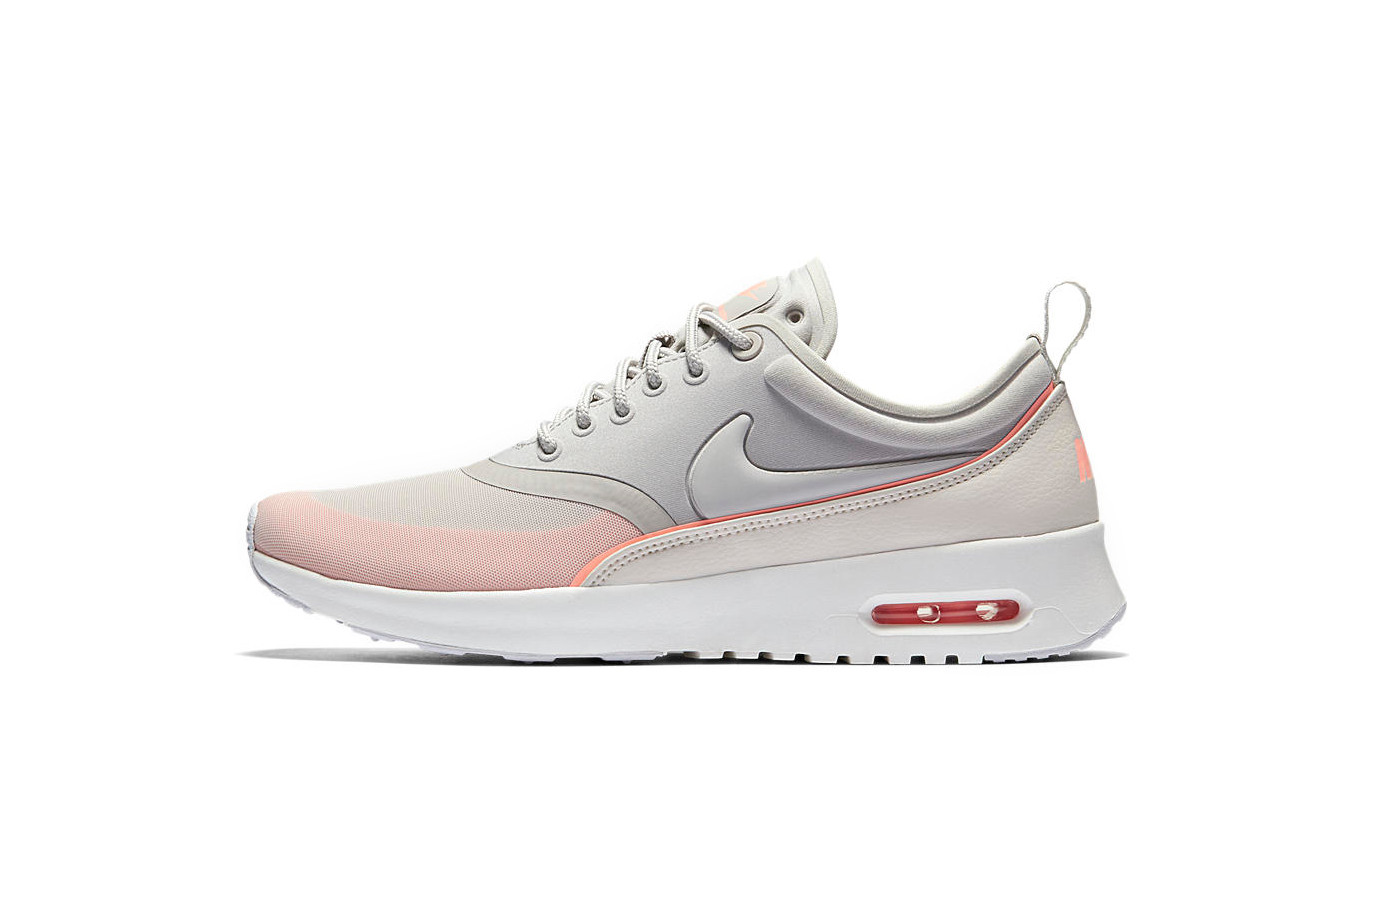 Nike Flavors Air Max Thea Ultra in Peaches and Cream